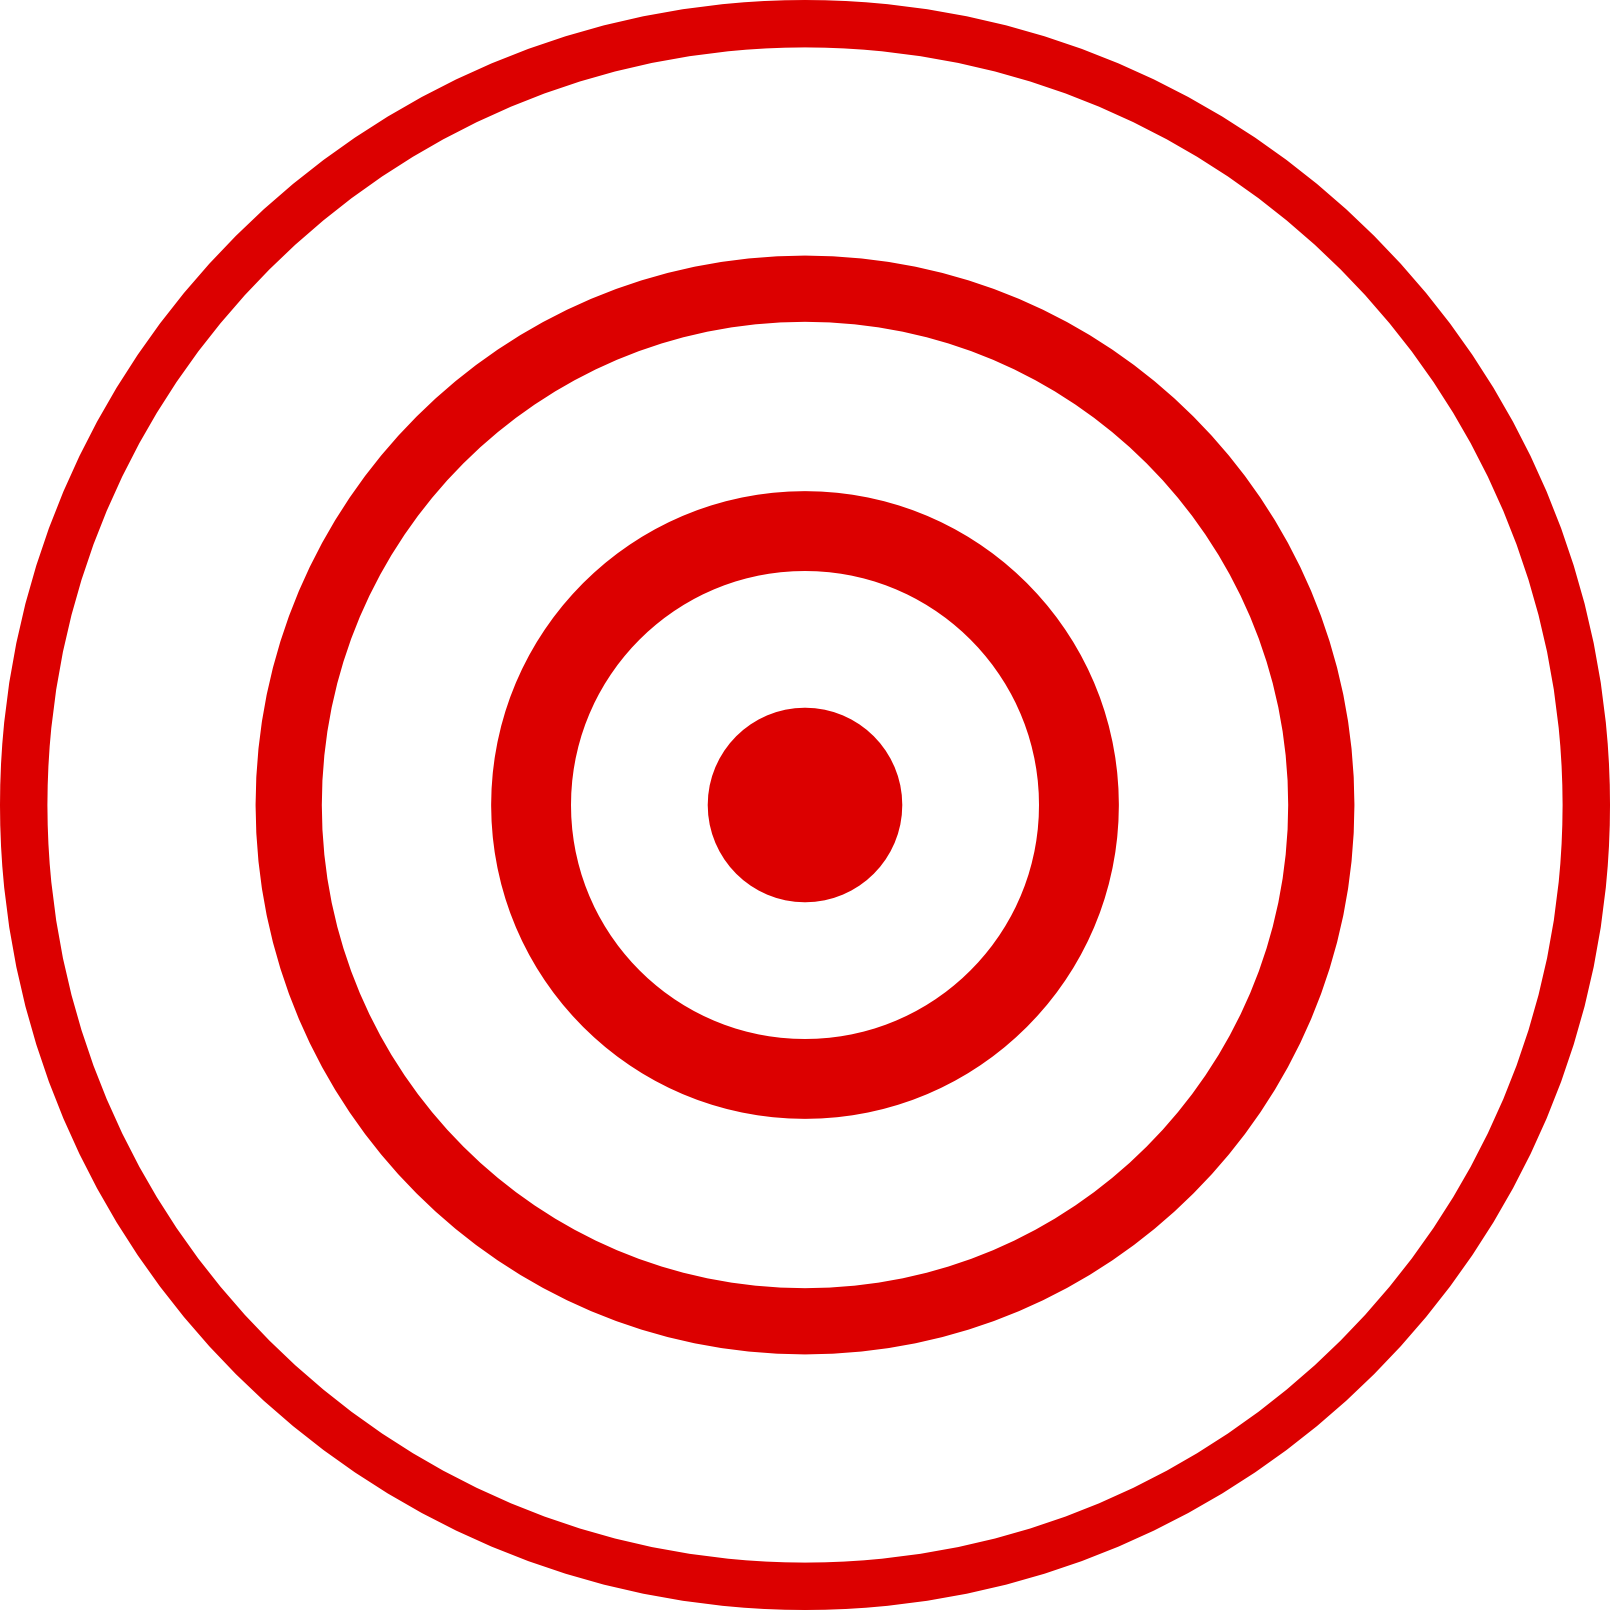 photograph relating to Printable Bullseye identified as Printable Bullseye Concentrate N3 cost-free graphic